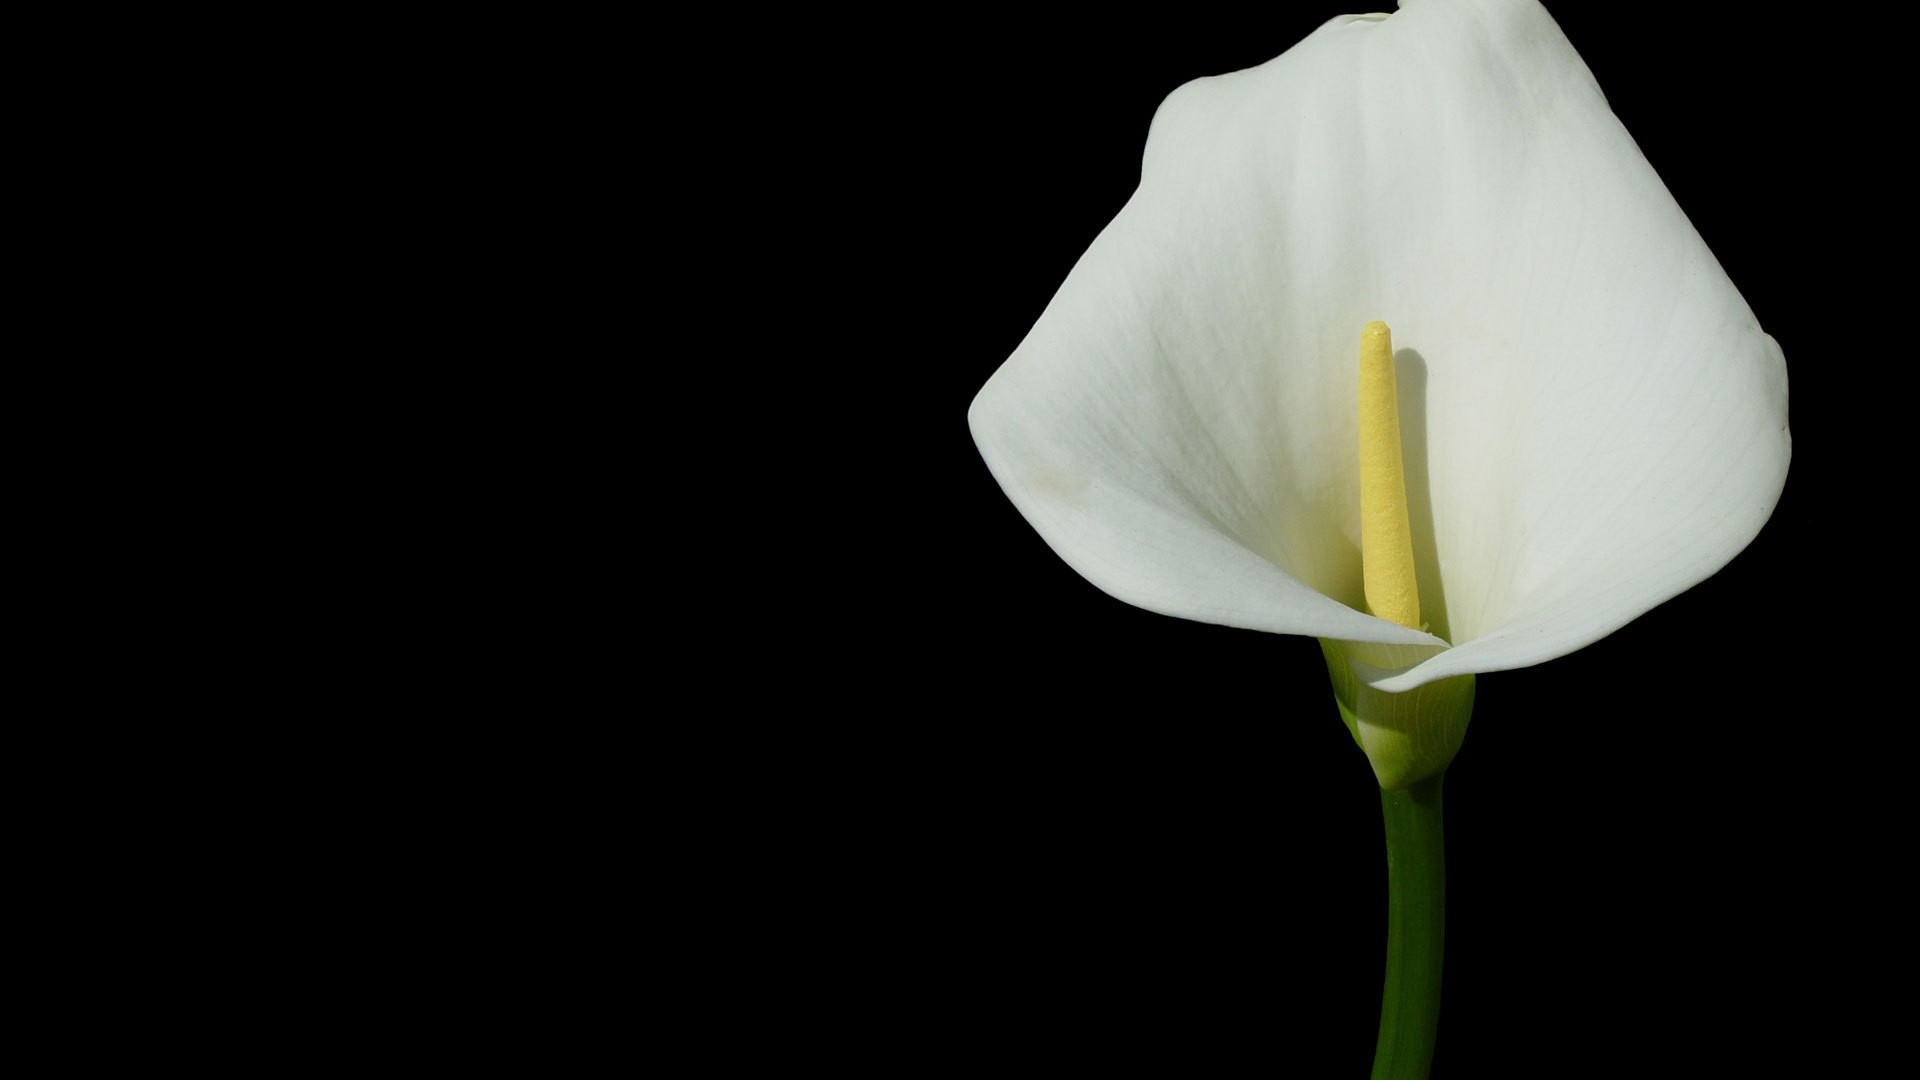 Download Wallpaper 1920x1080 Flower White Yellow Green Full Hd